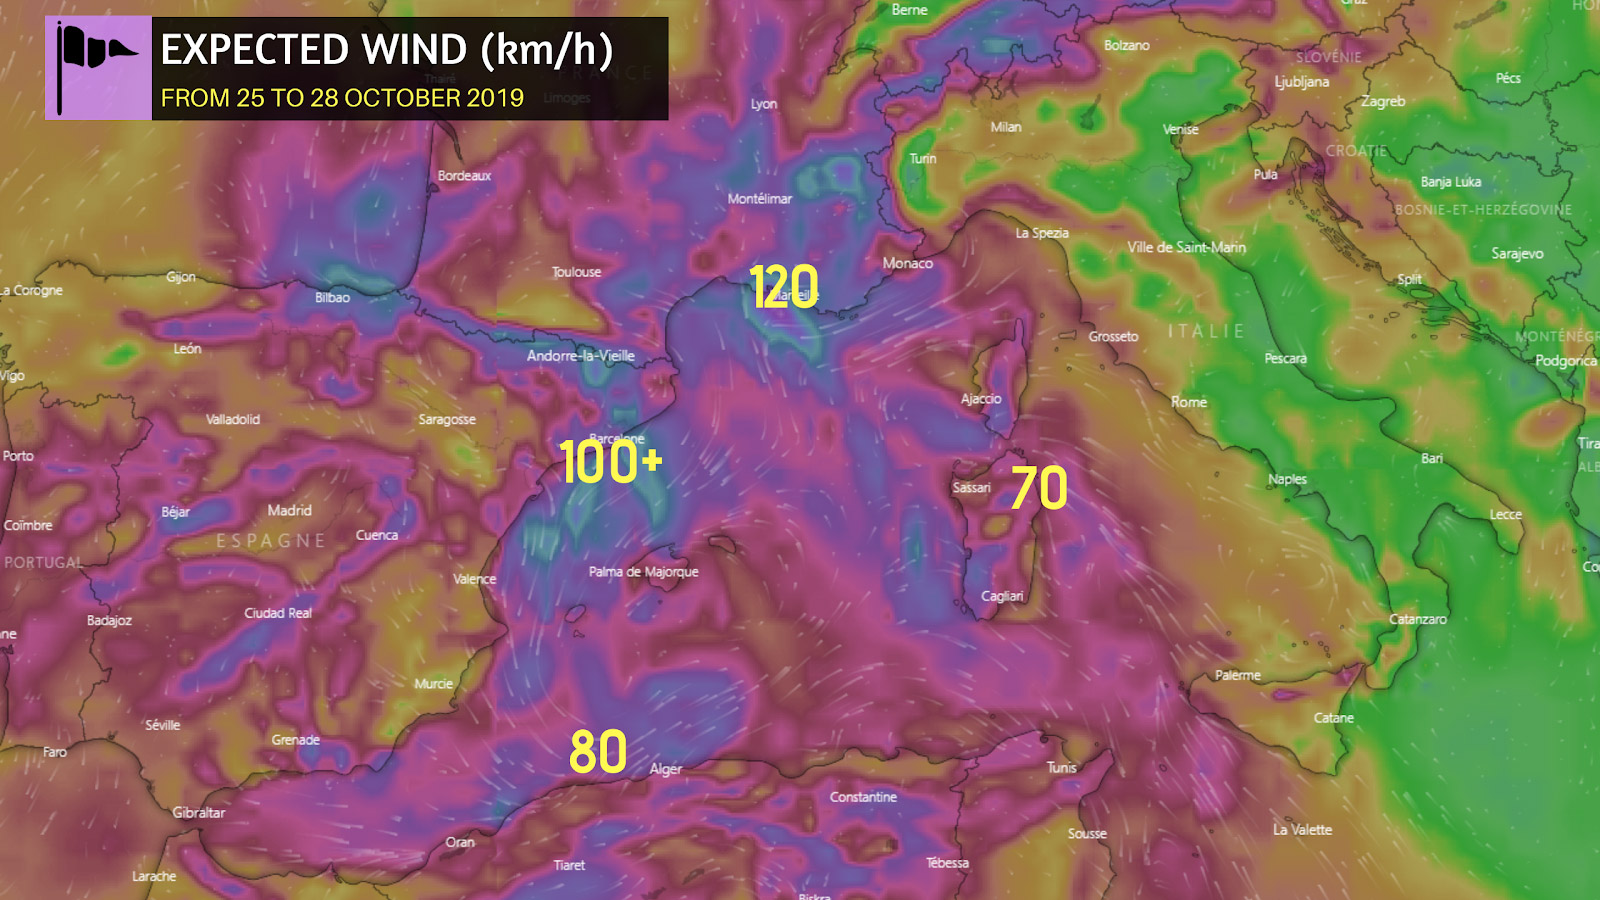 photo:Windy.com;desc: Expected wind in km/h;